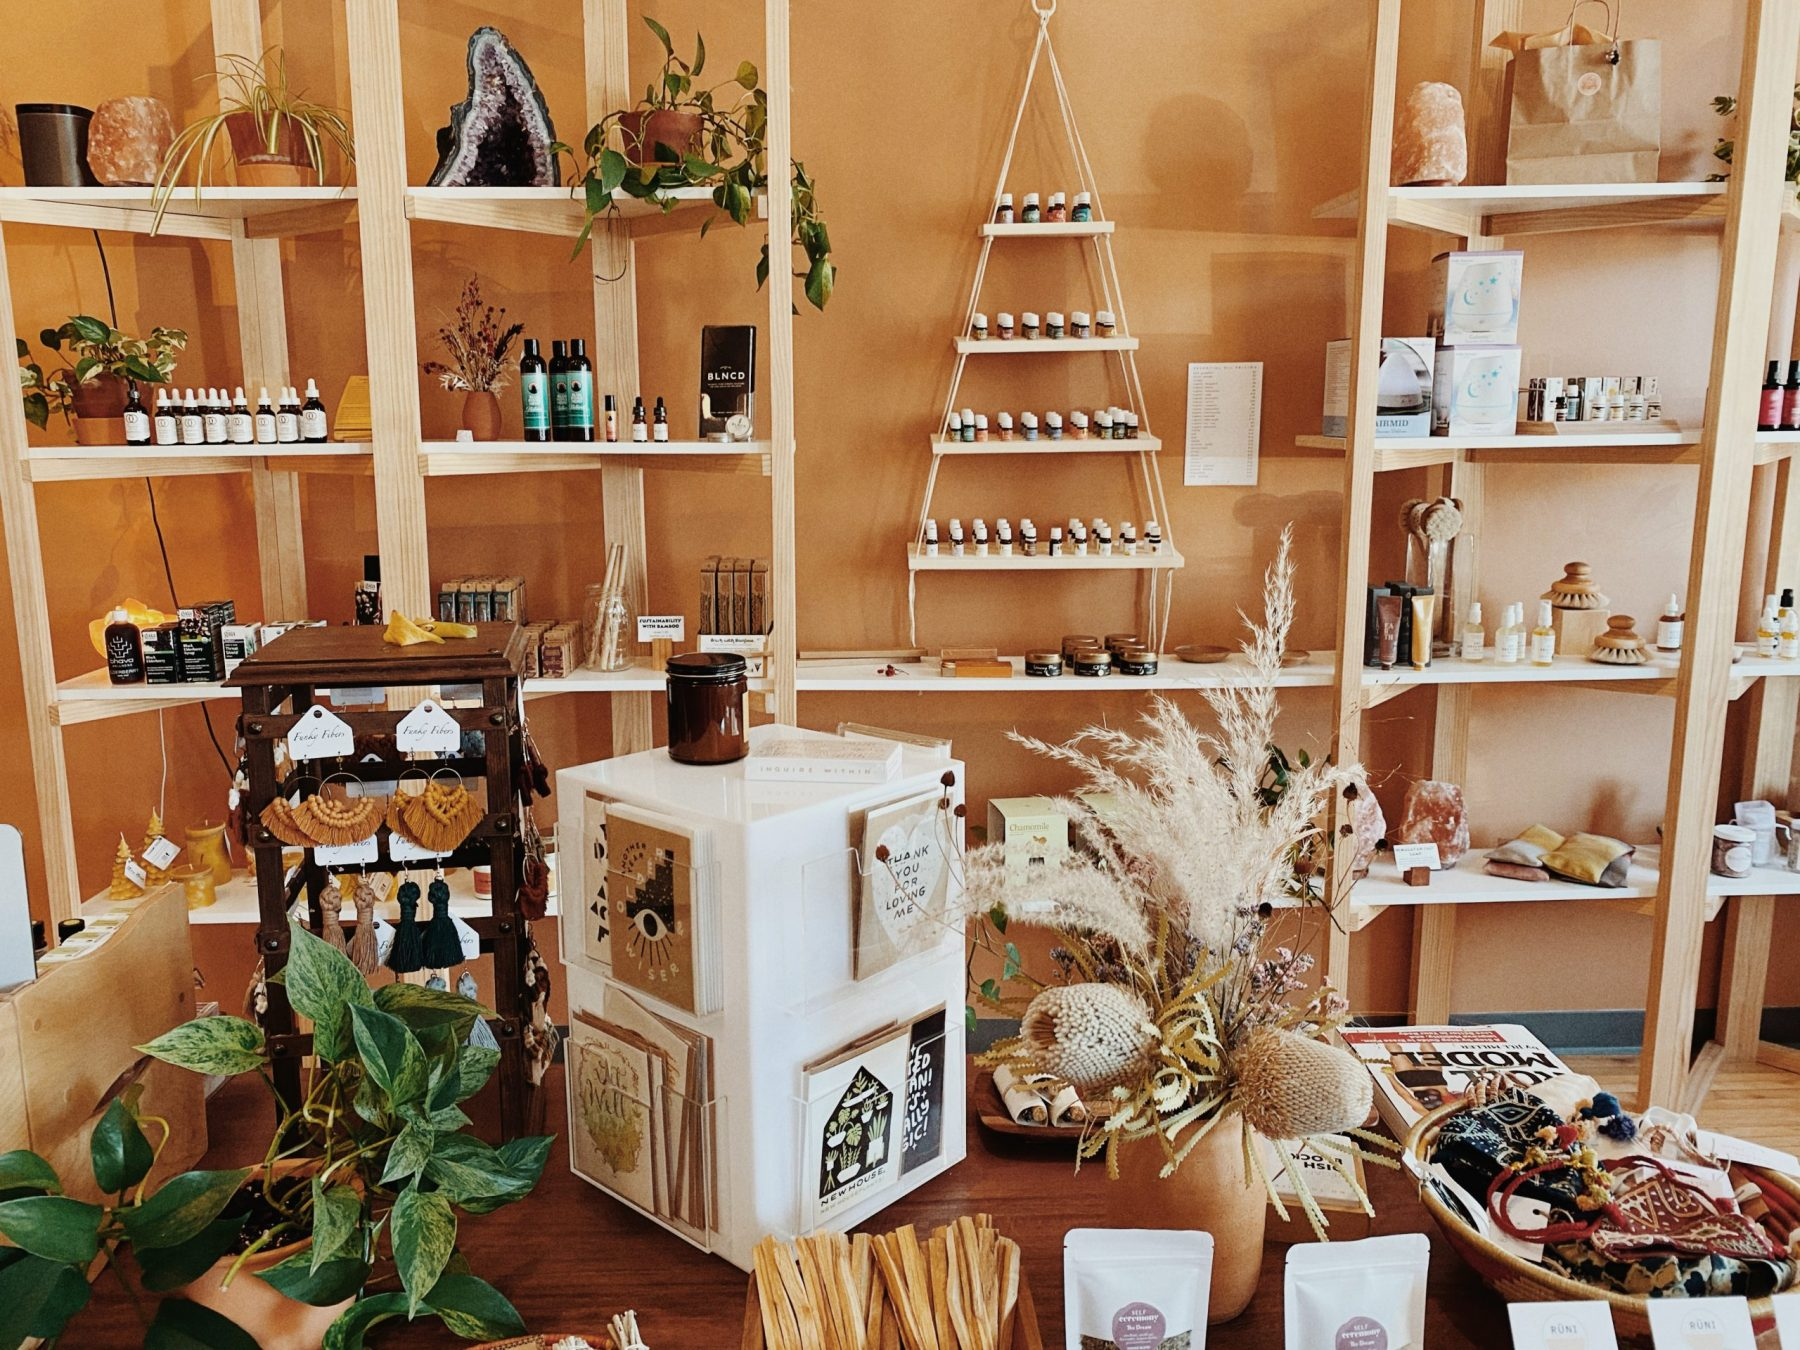 image of products in the Healing Elements shop